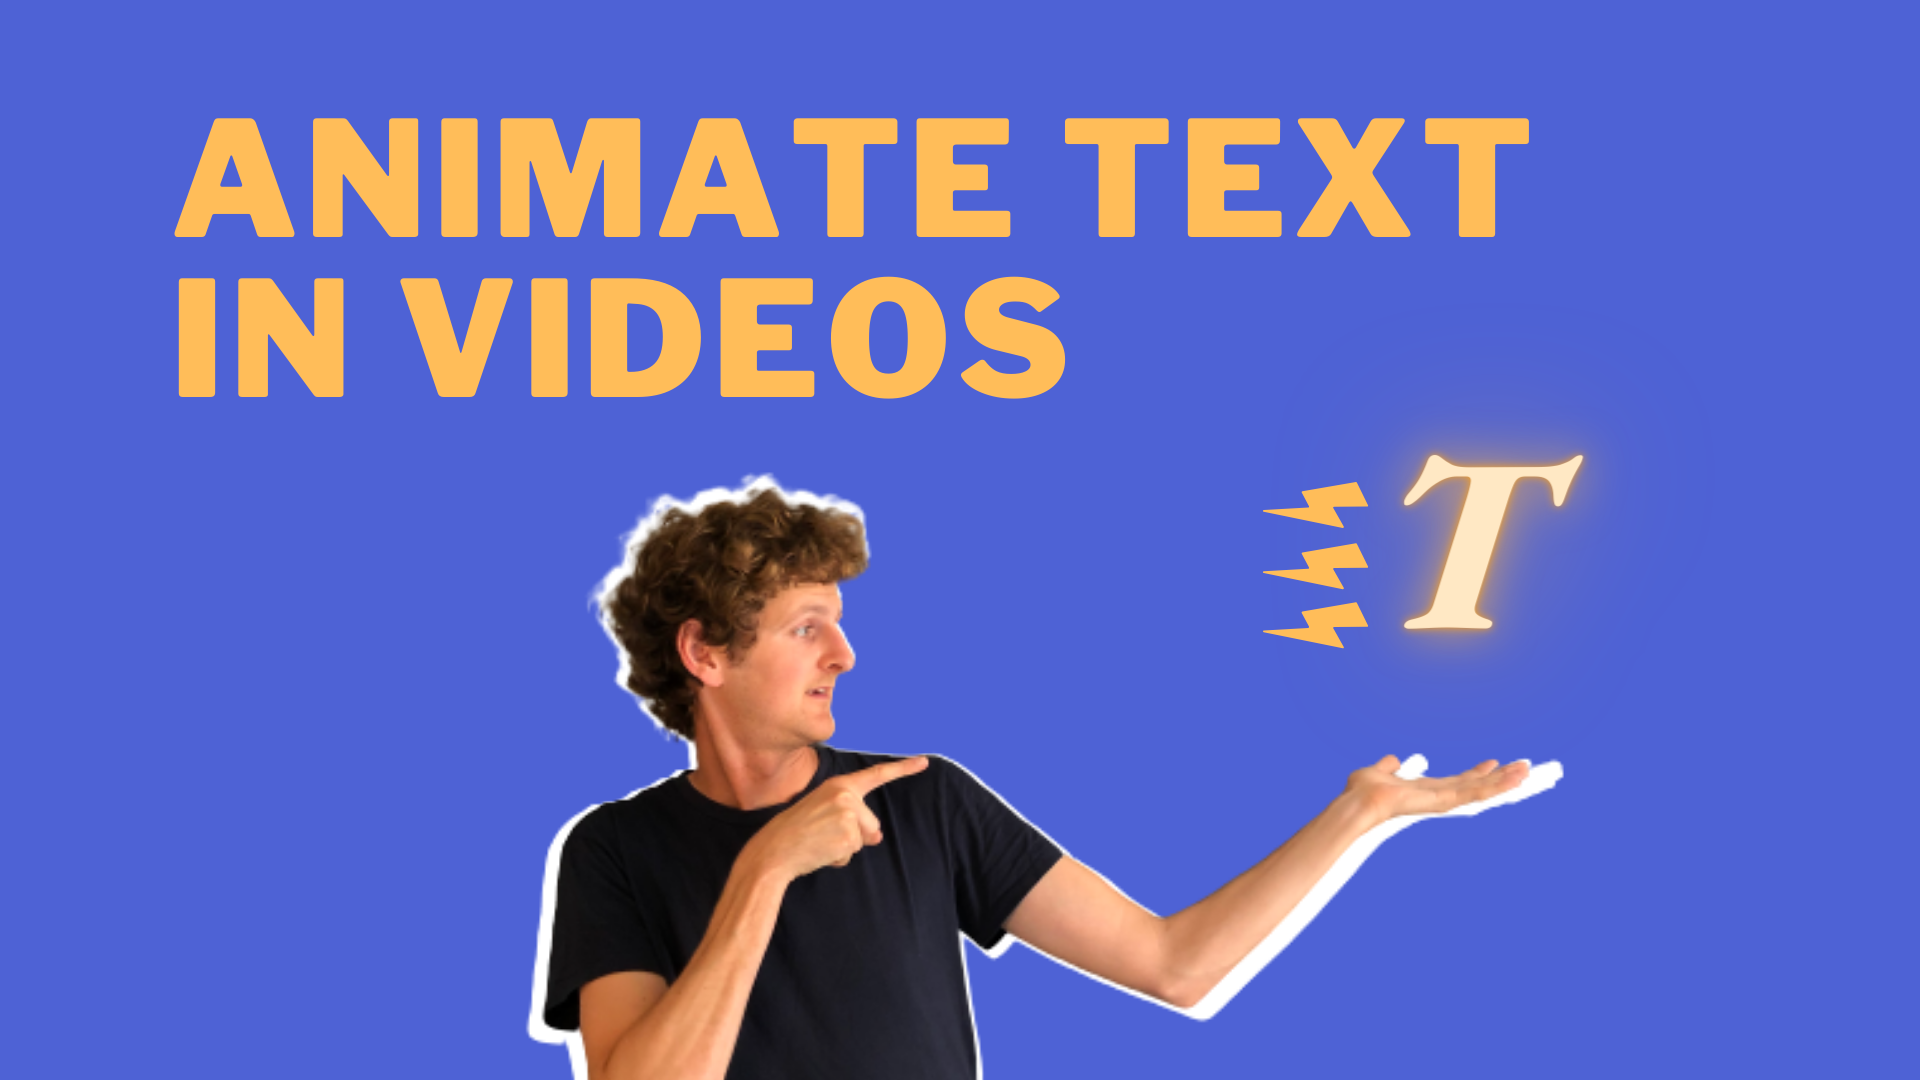 How to Animate Text in Videos